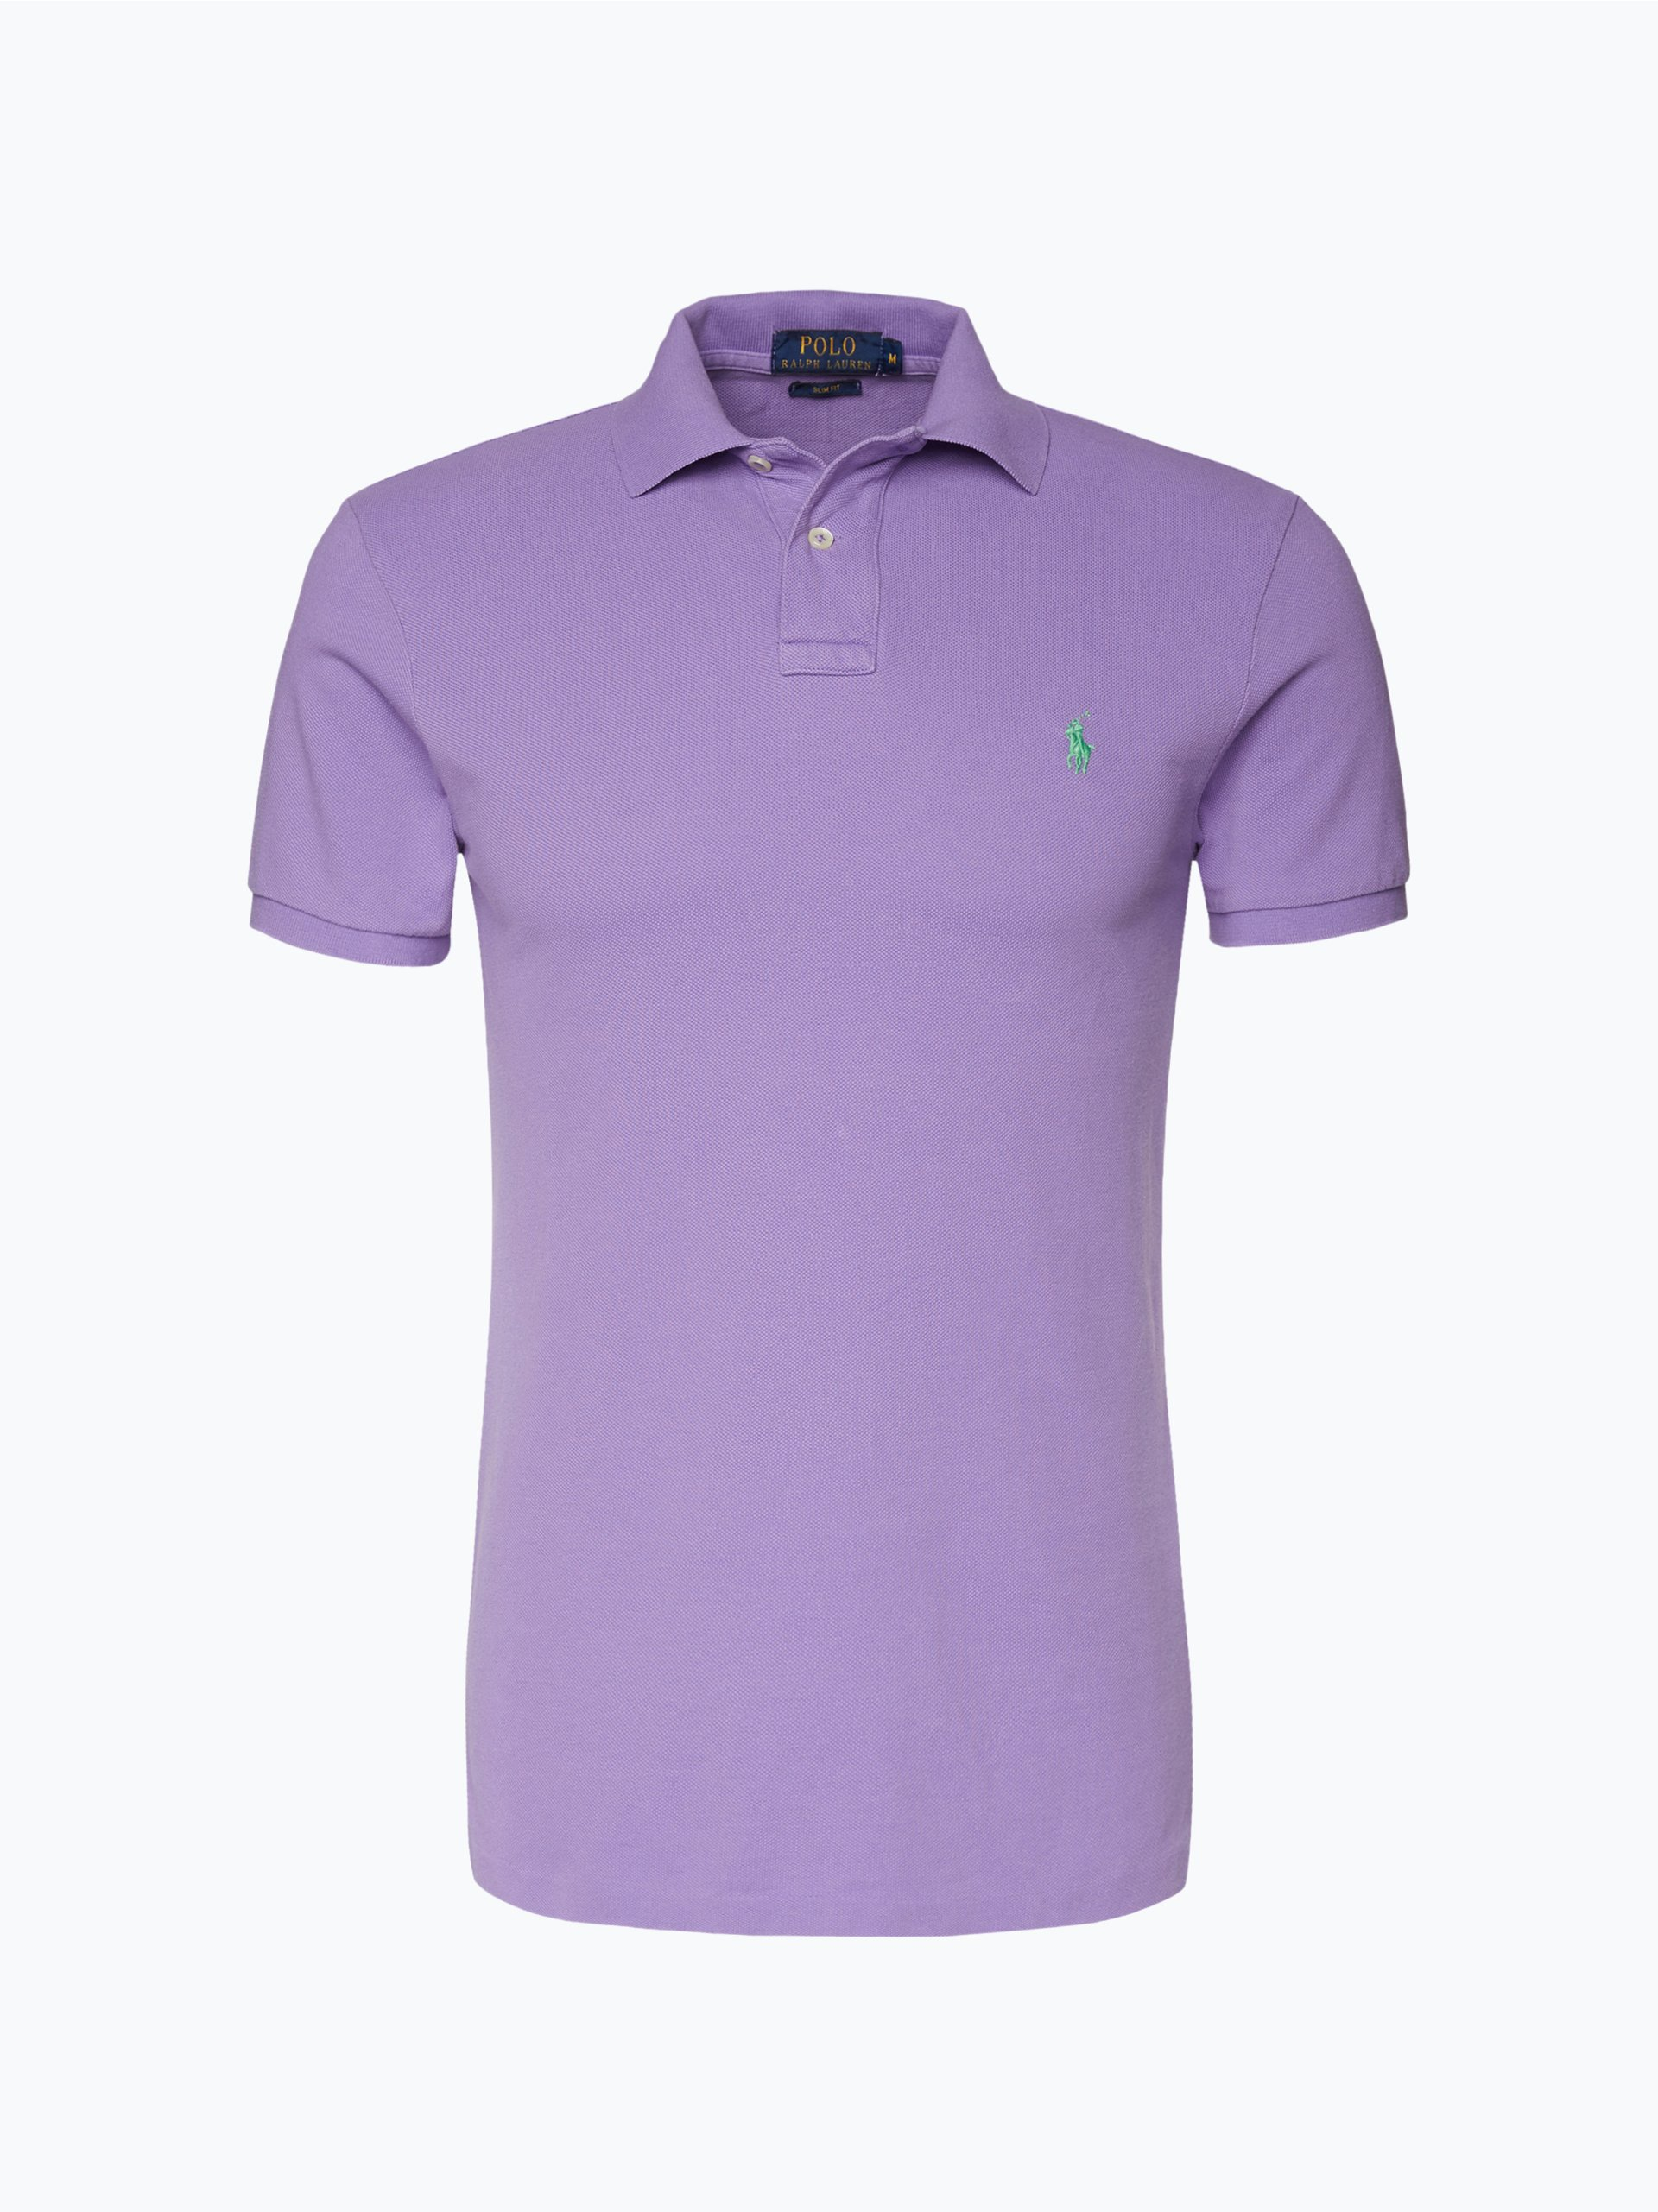 polo ralph lauren herren poloshirt purple uni online. Black Bedroom Furniture Sets. Home Design Ideas